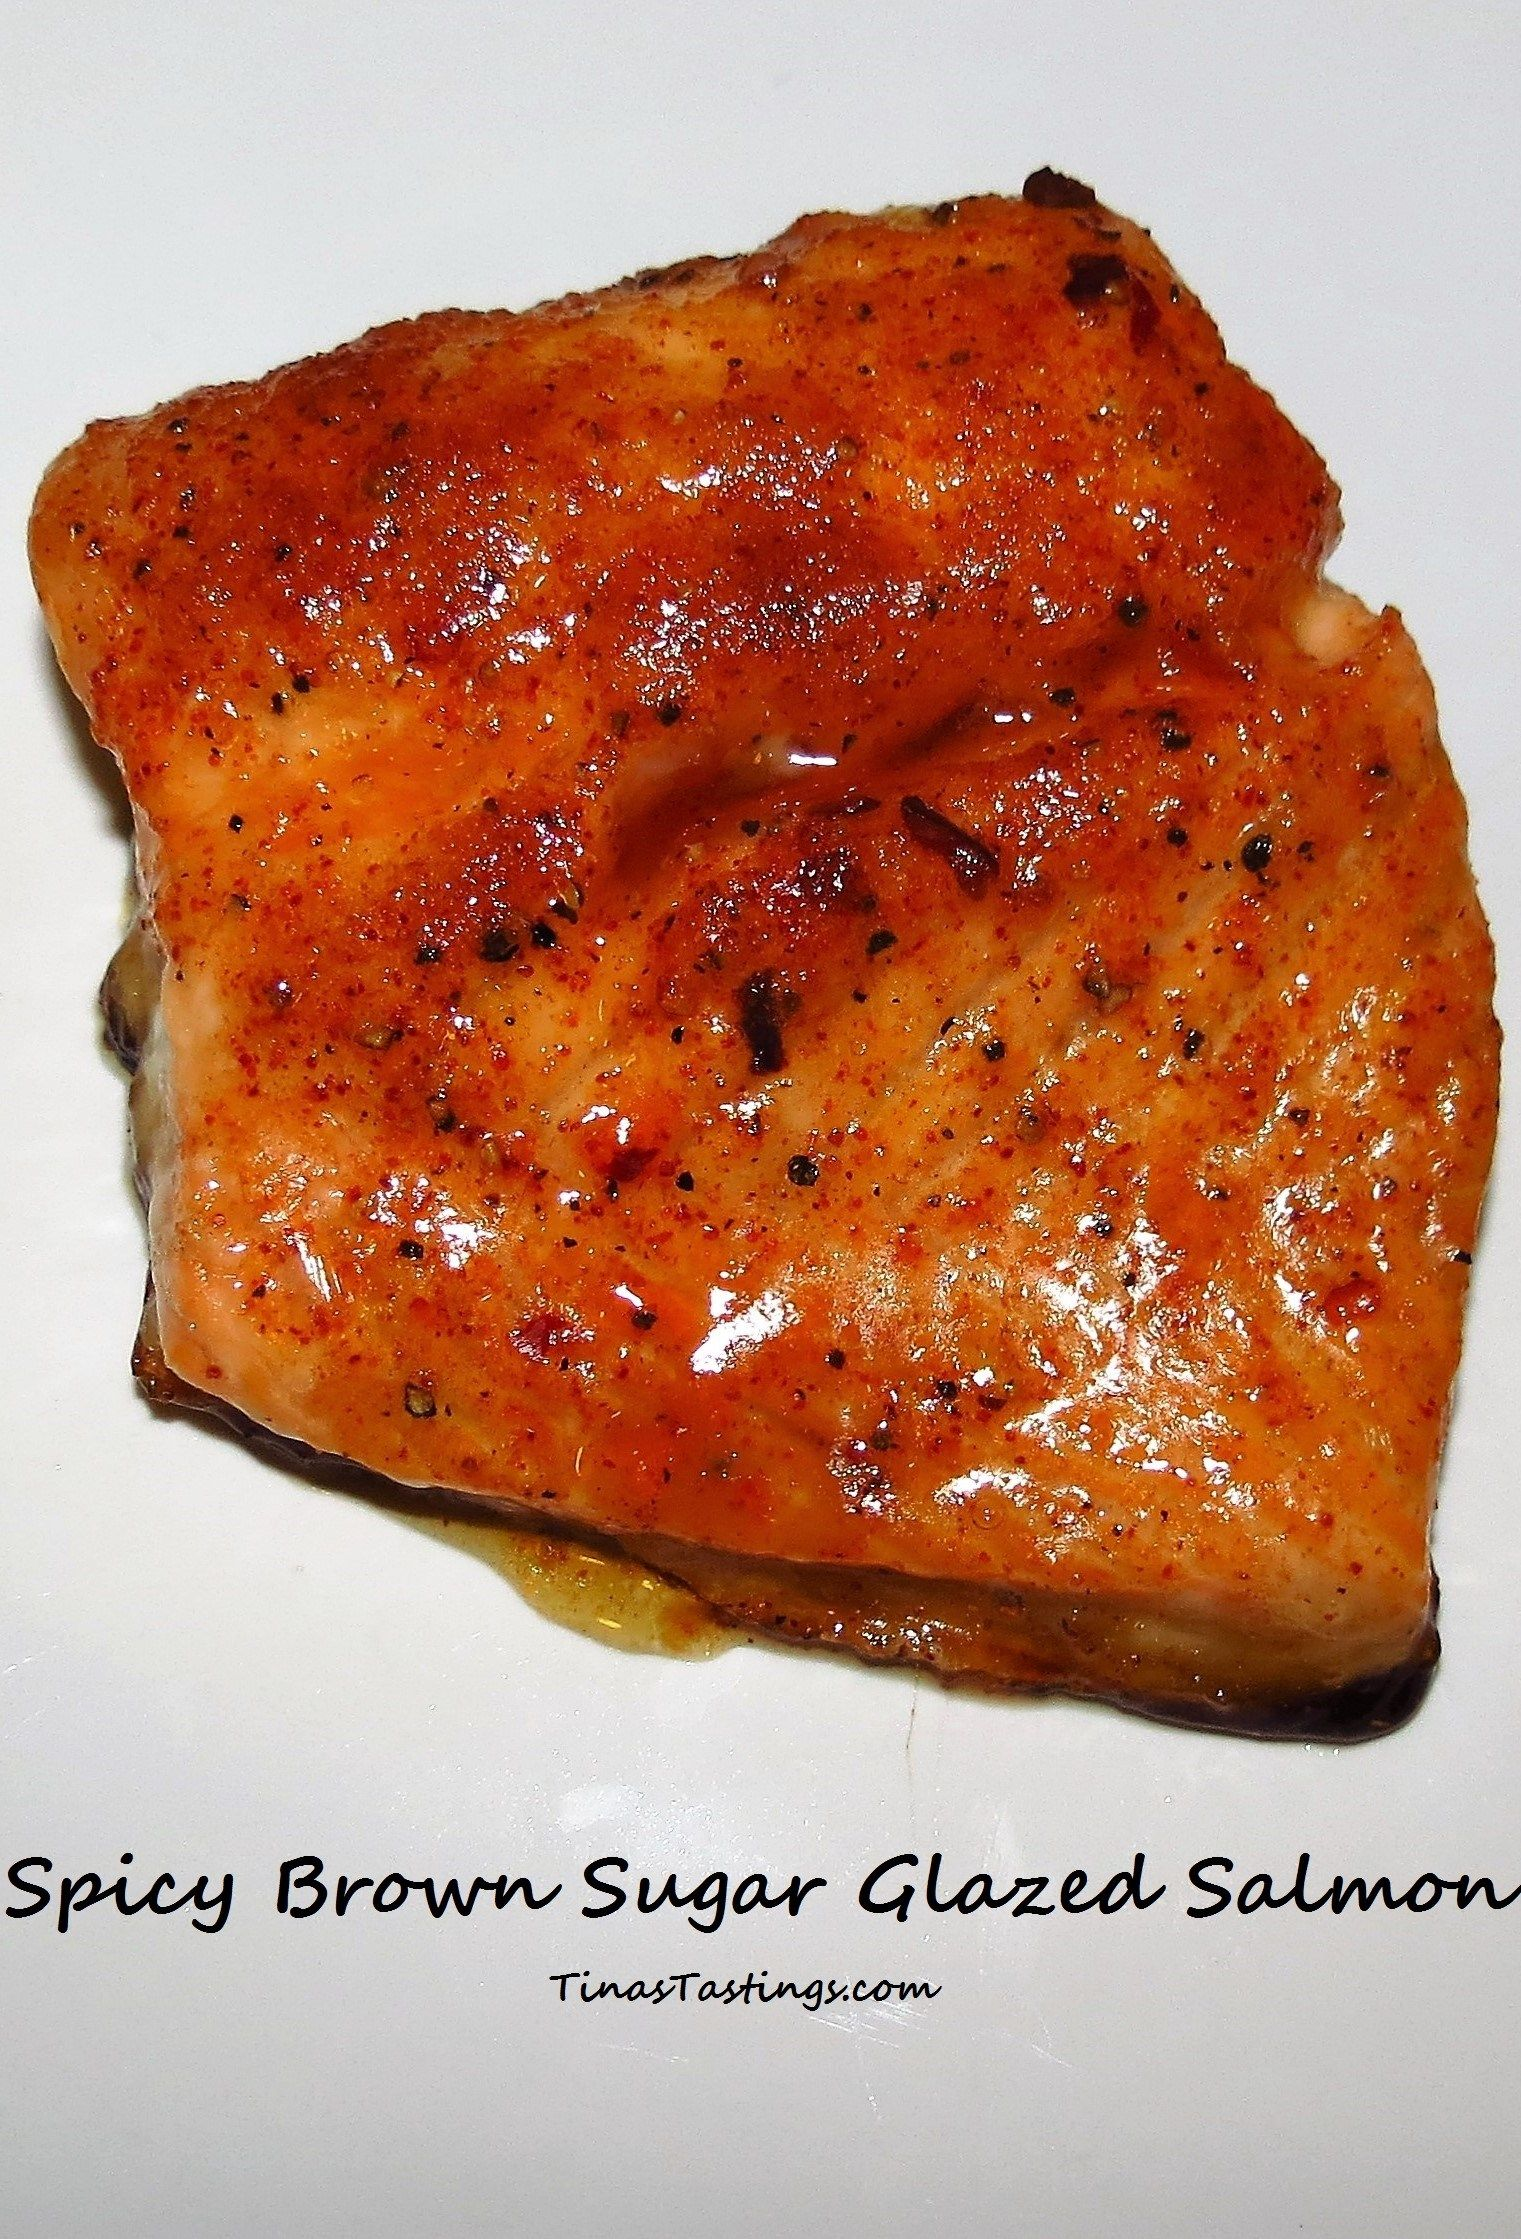 Spicy Brown Sugar Glazed Salmon - Tina's Tastings